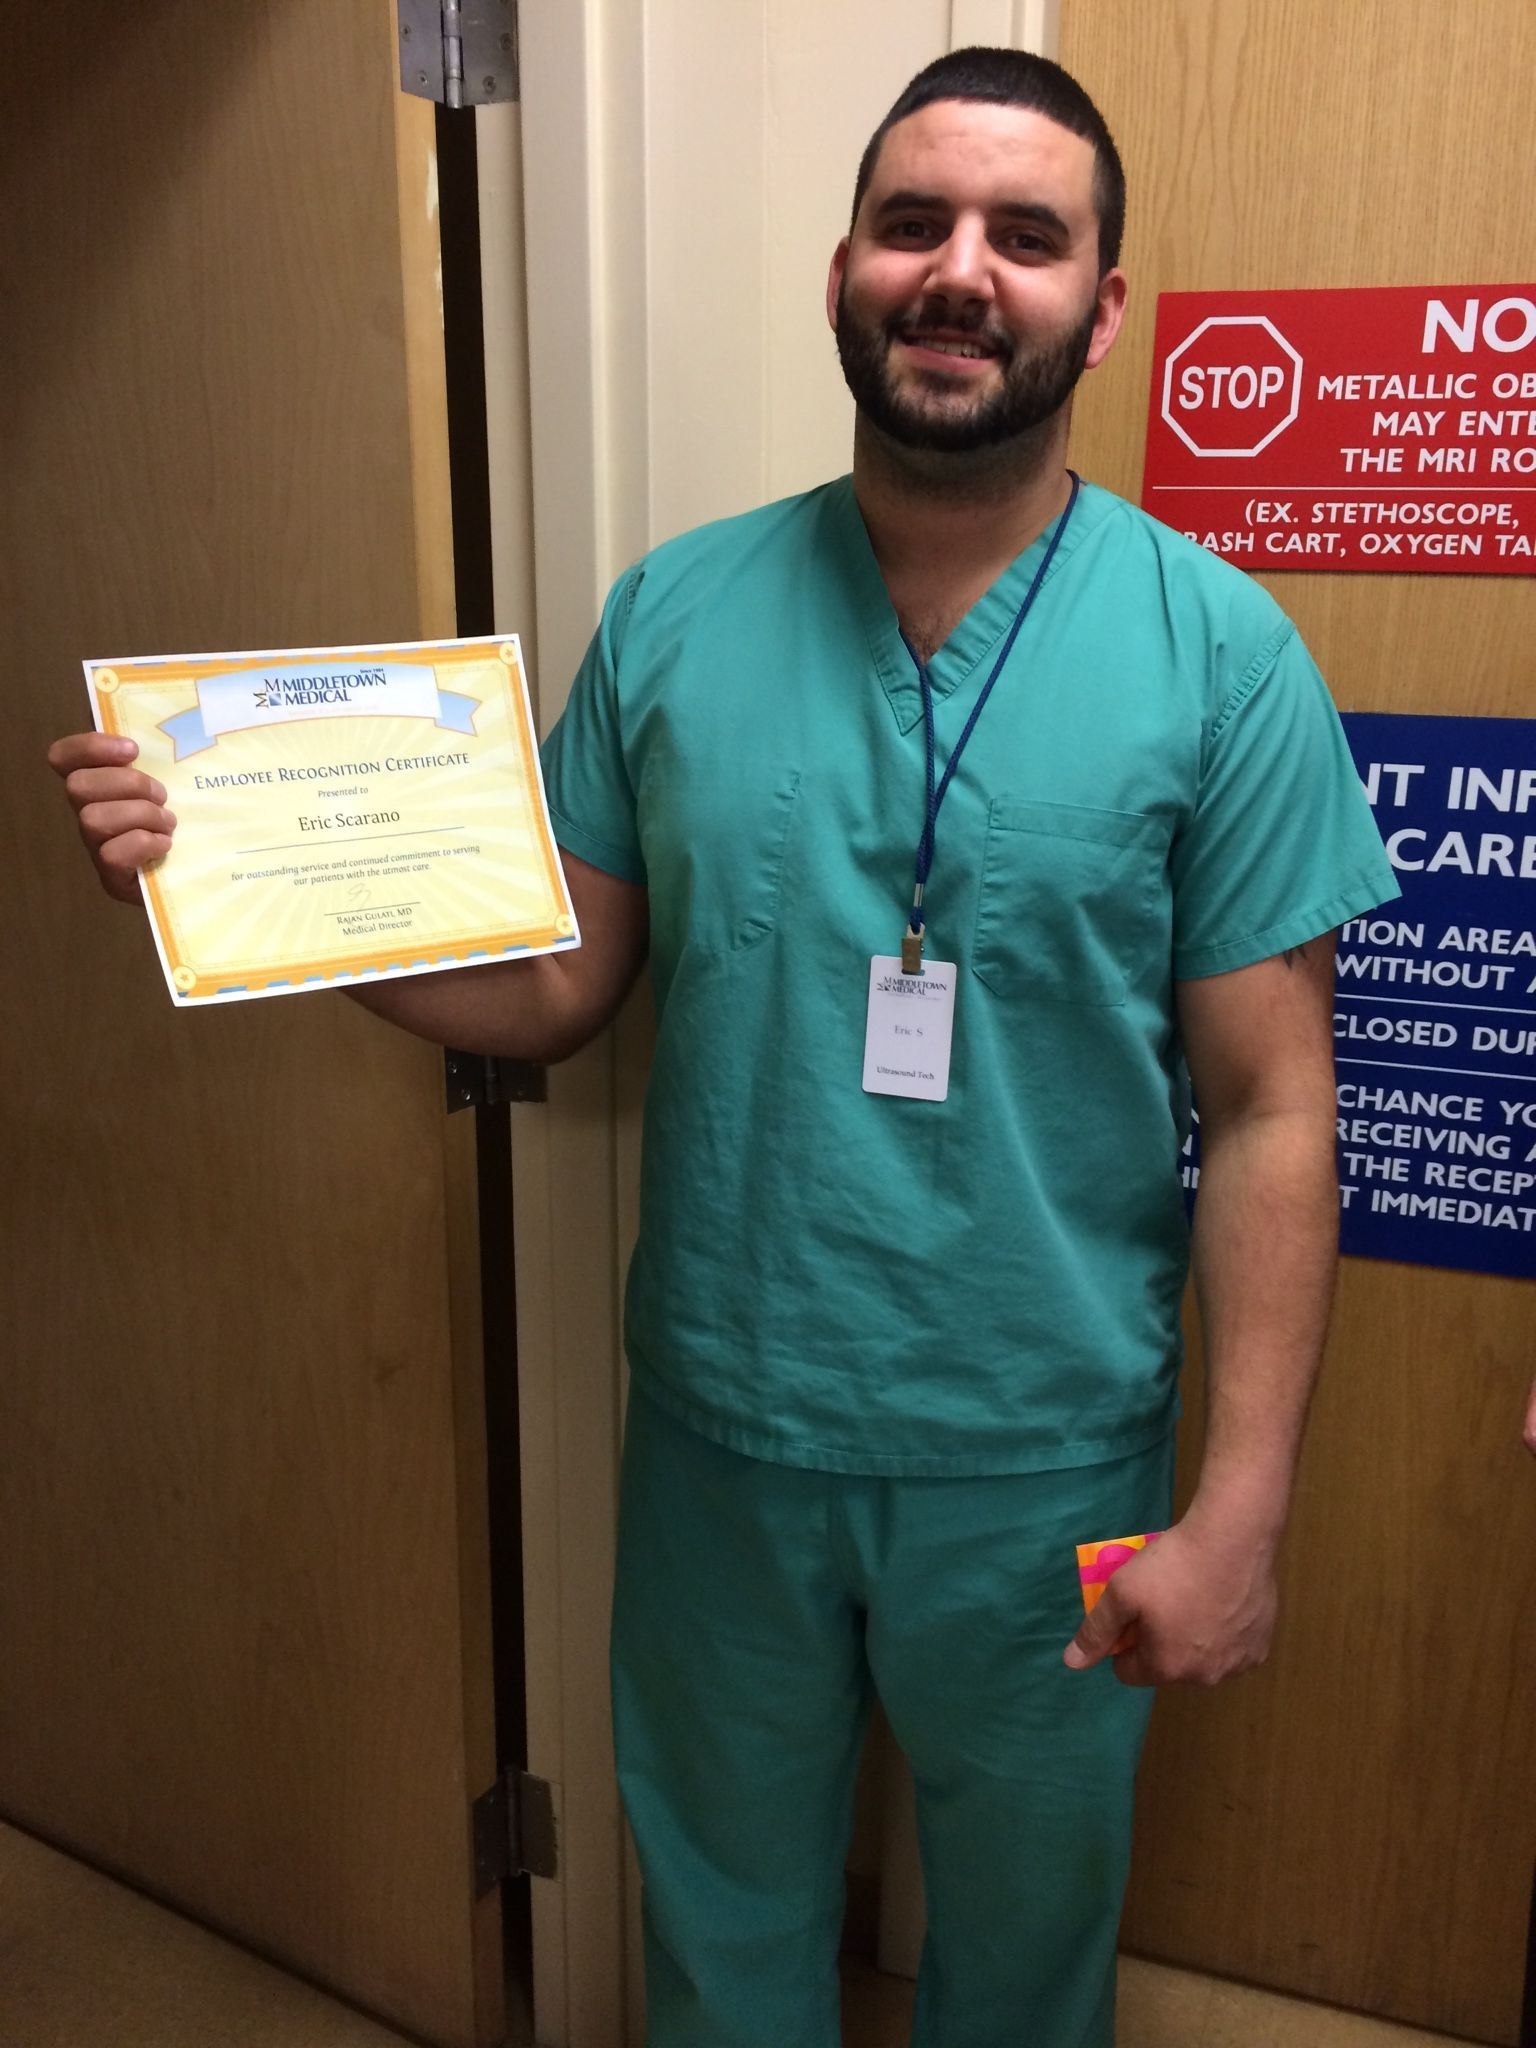 Congratulations to eric scarano from our radiology